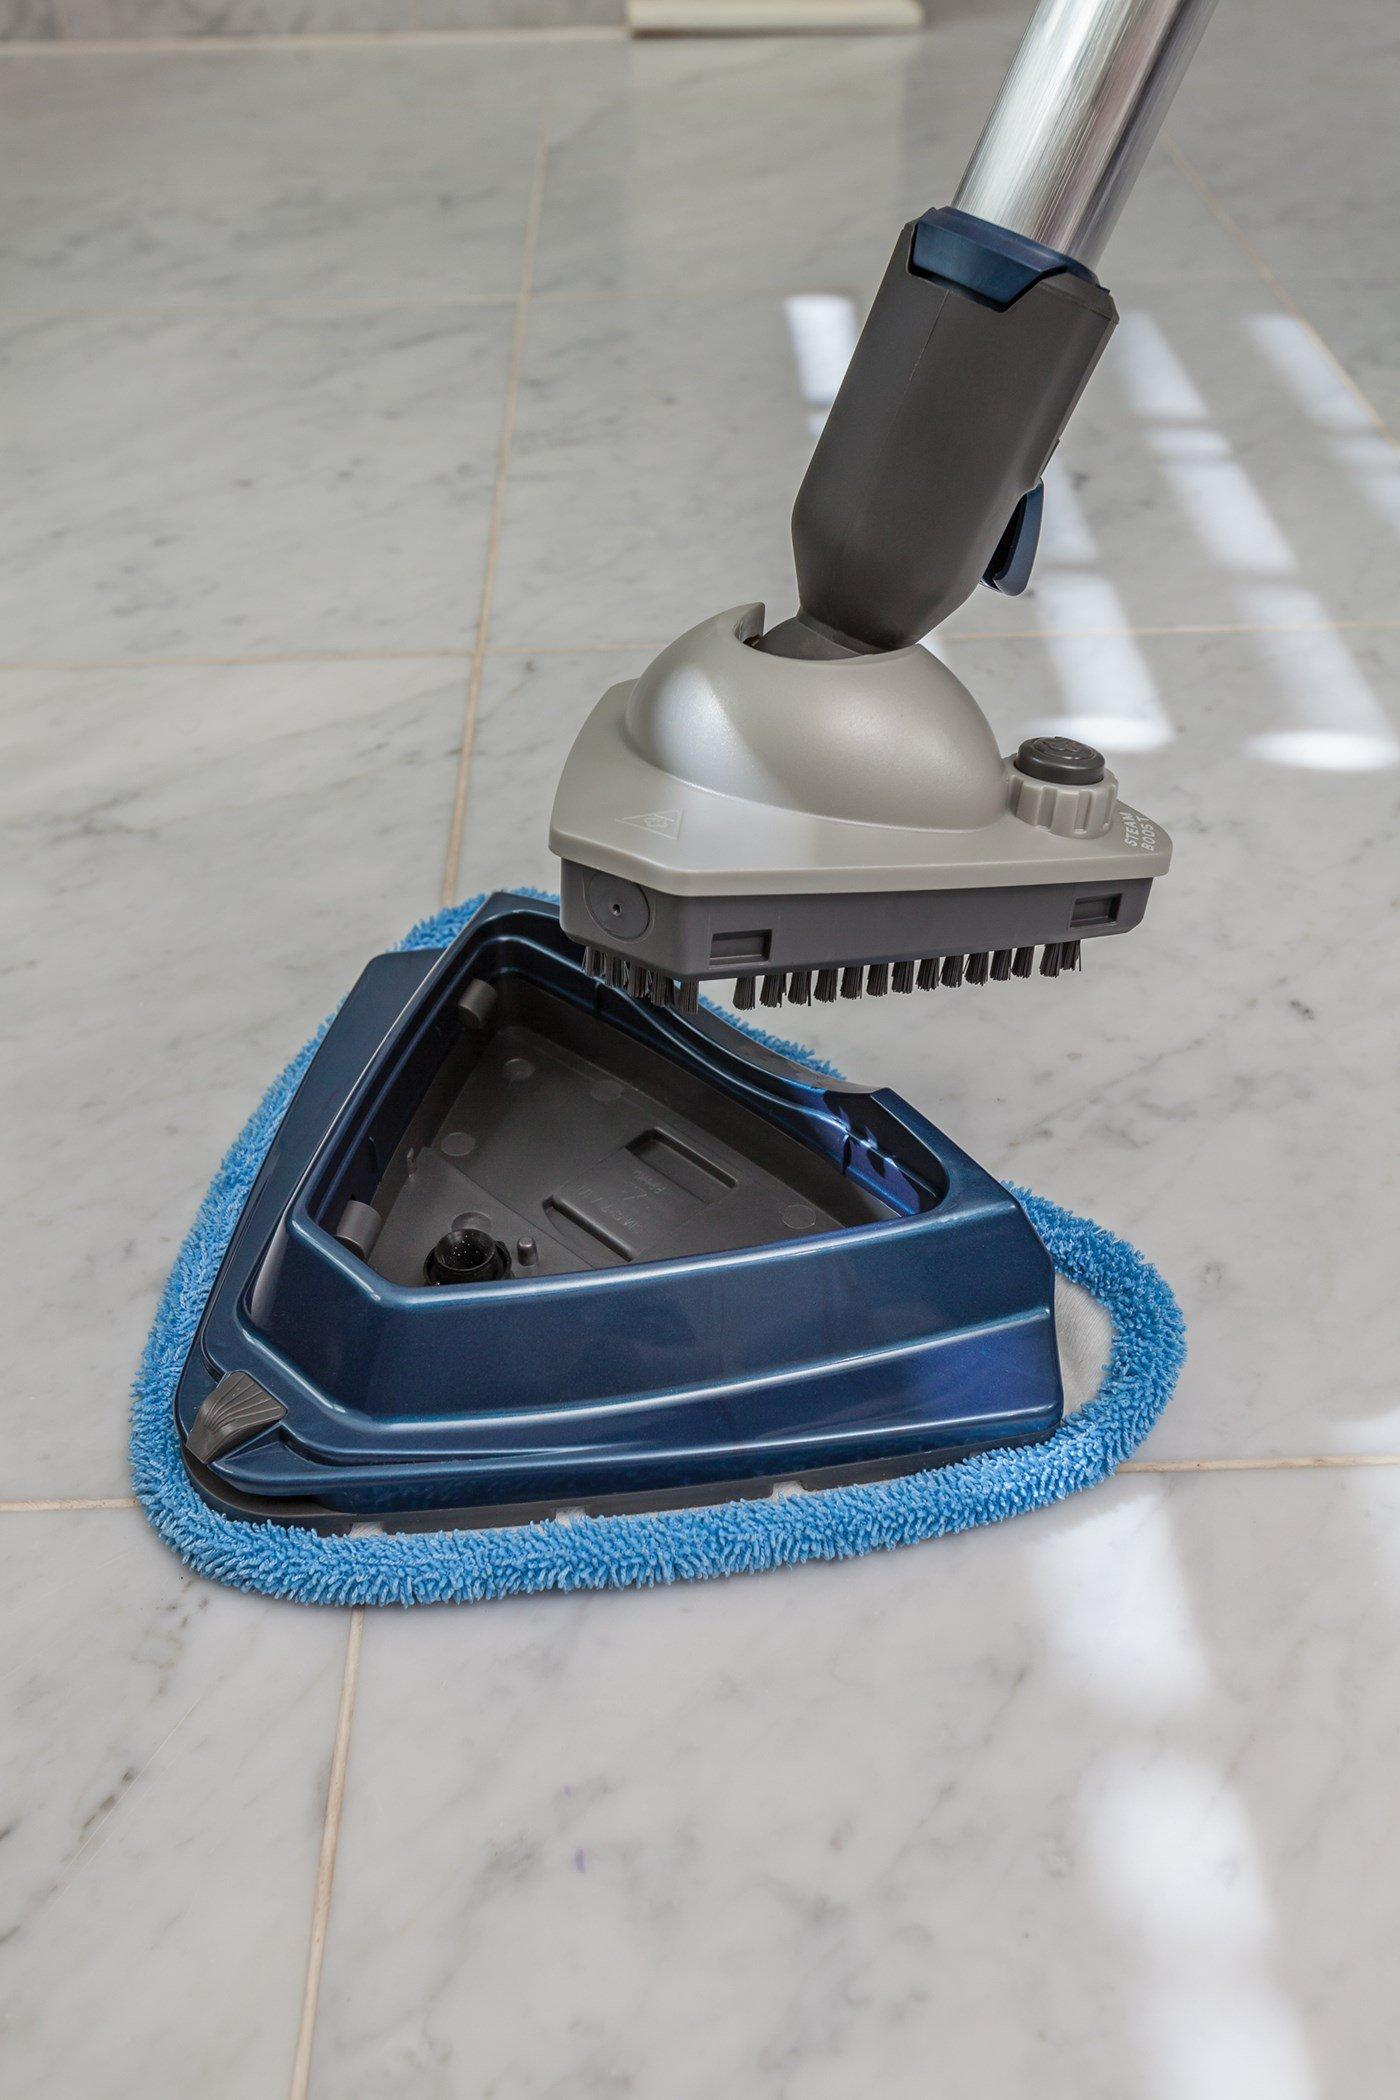 Hoover SteamScrub 3-IN-1 Reach5